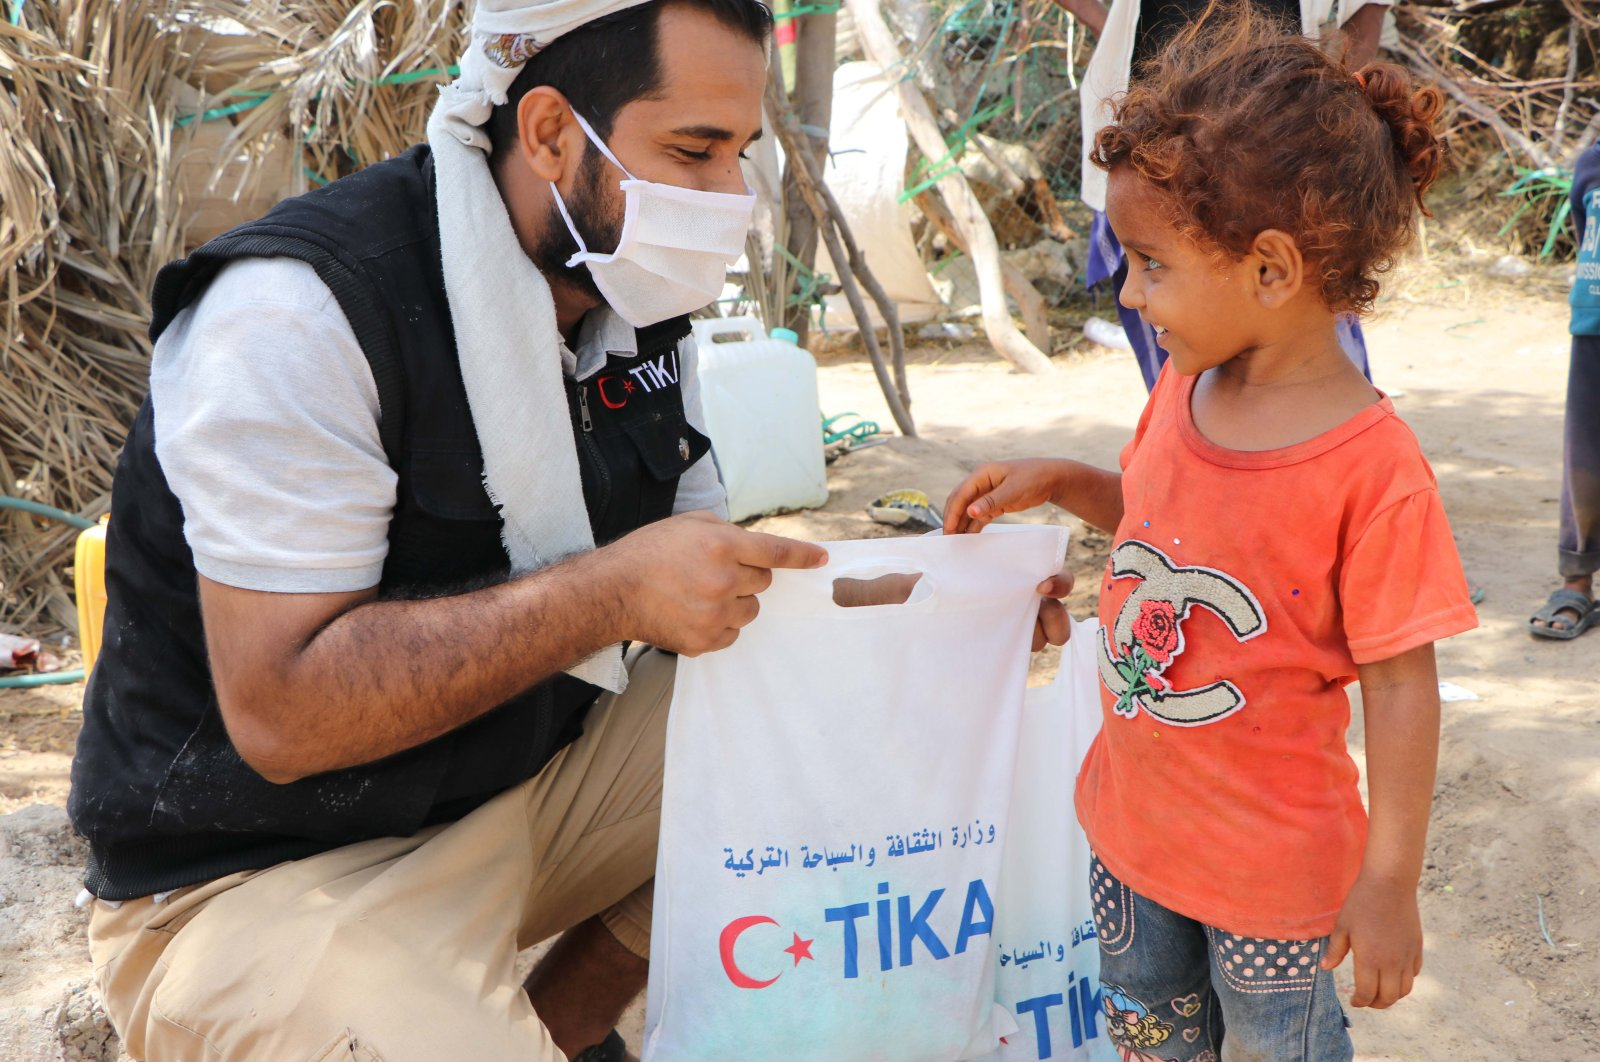 A TIKA worker hands an aid package to a girl in Yemen, May 21, 2020. (AA Photo)